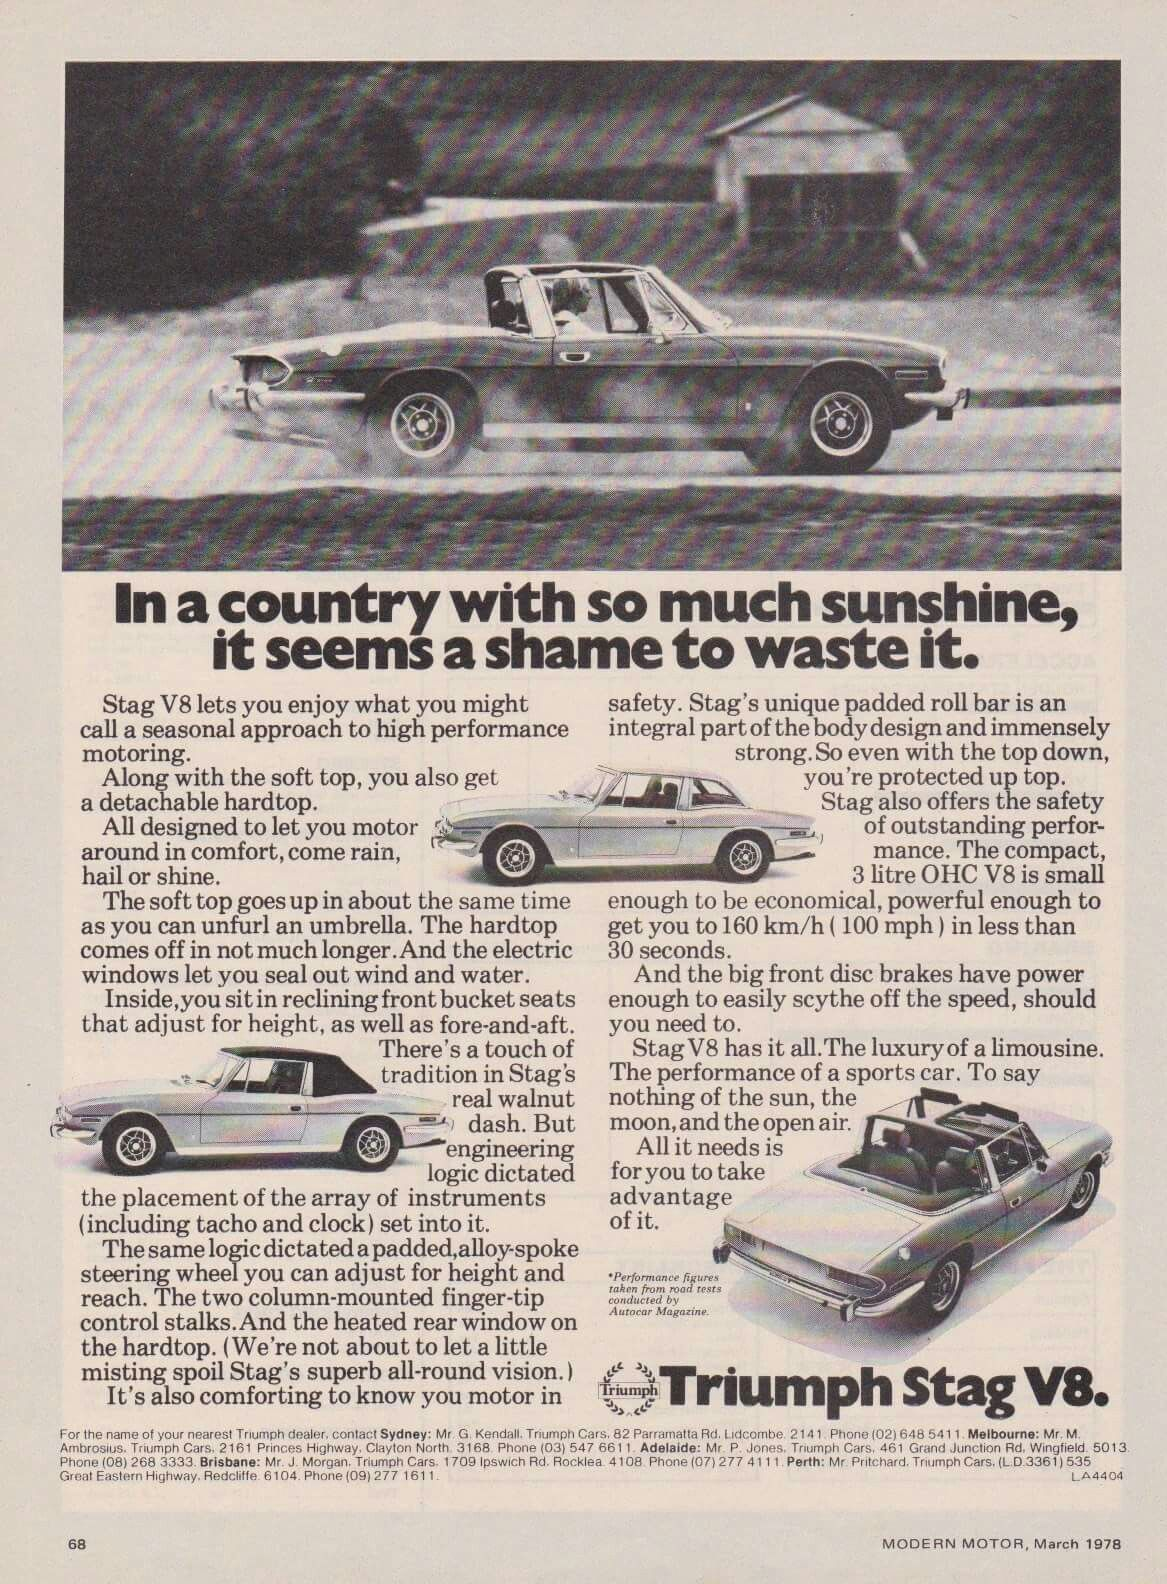 Triumph Stag advertising from the Australian Modern Motor magazine ...